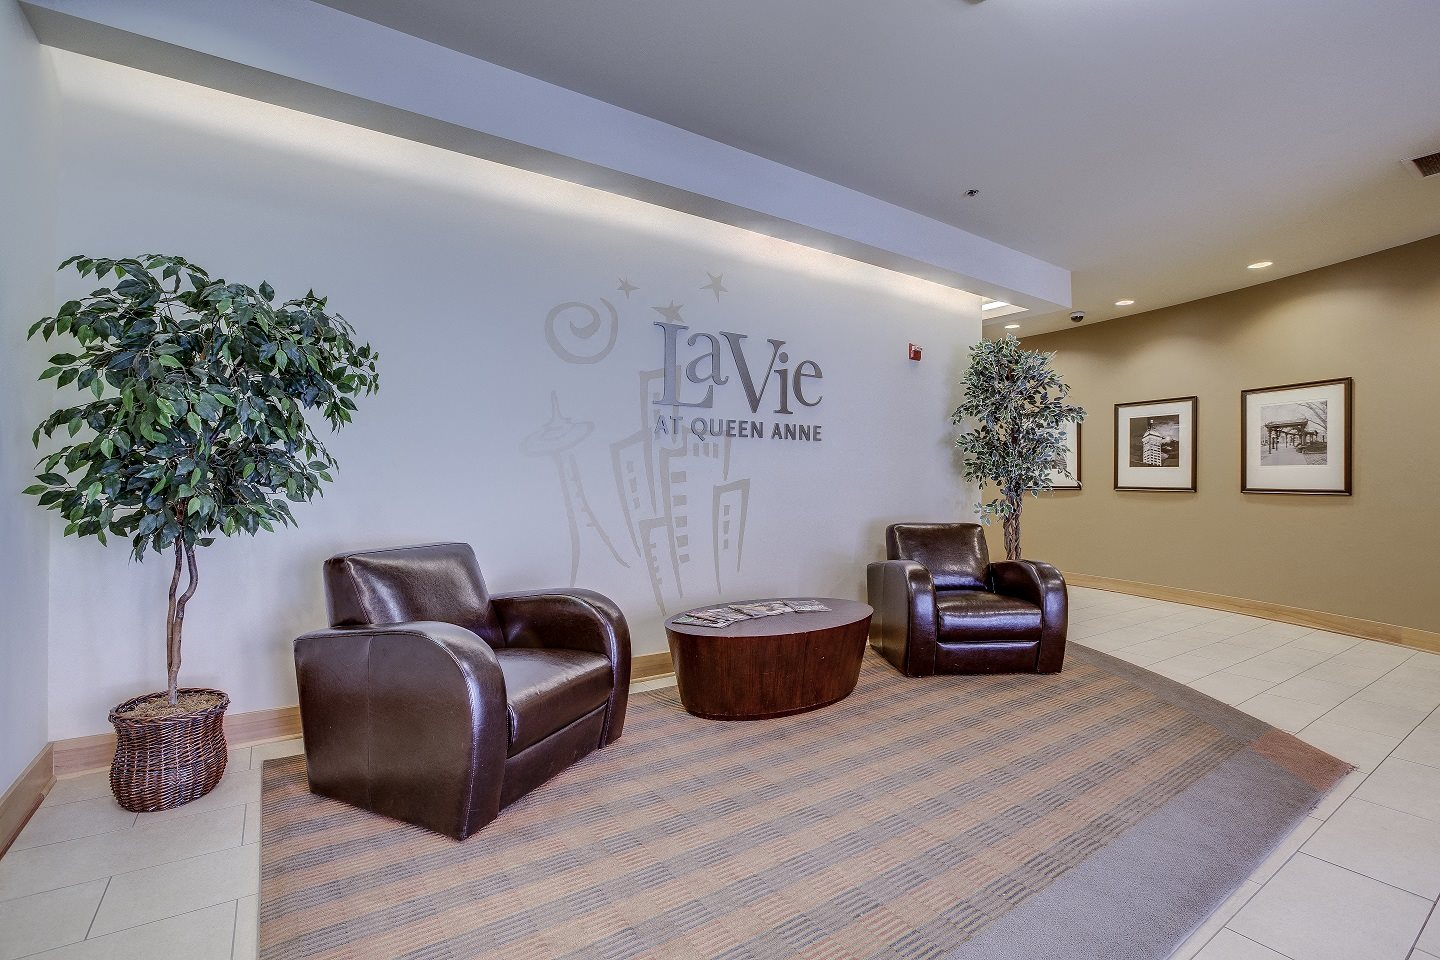 LaVie at Queen Anne Seattle, WA lobby